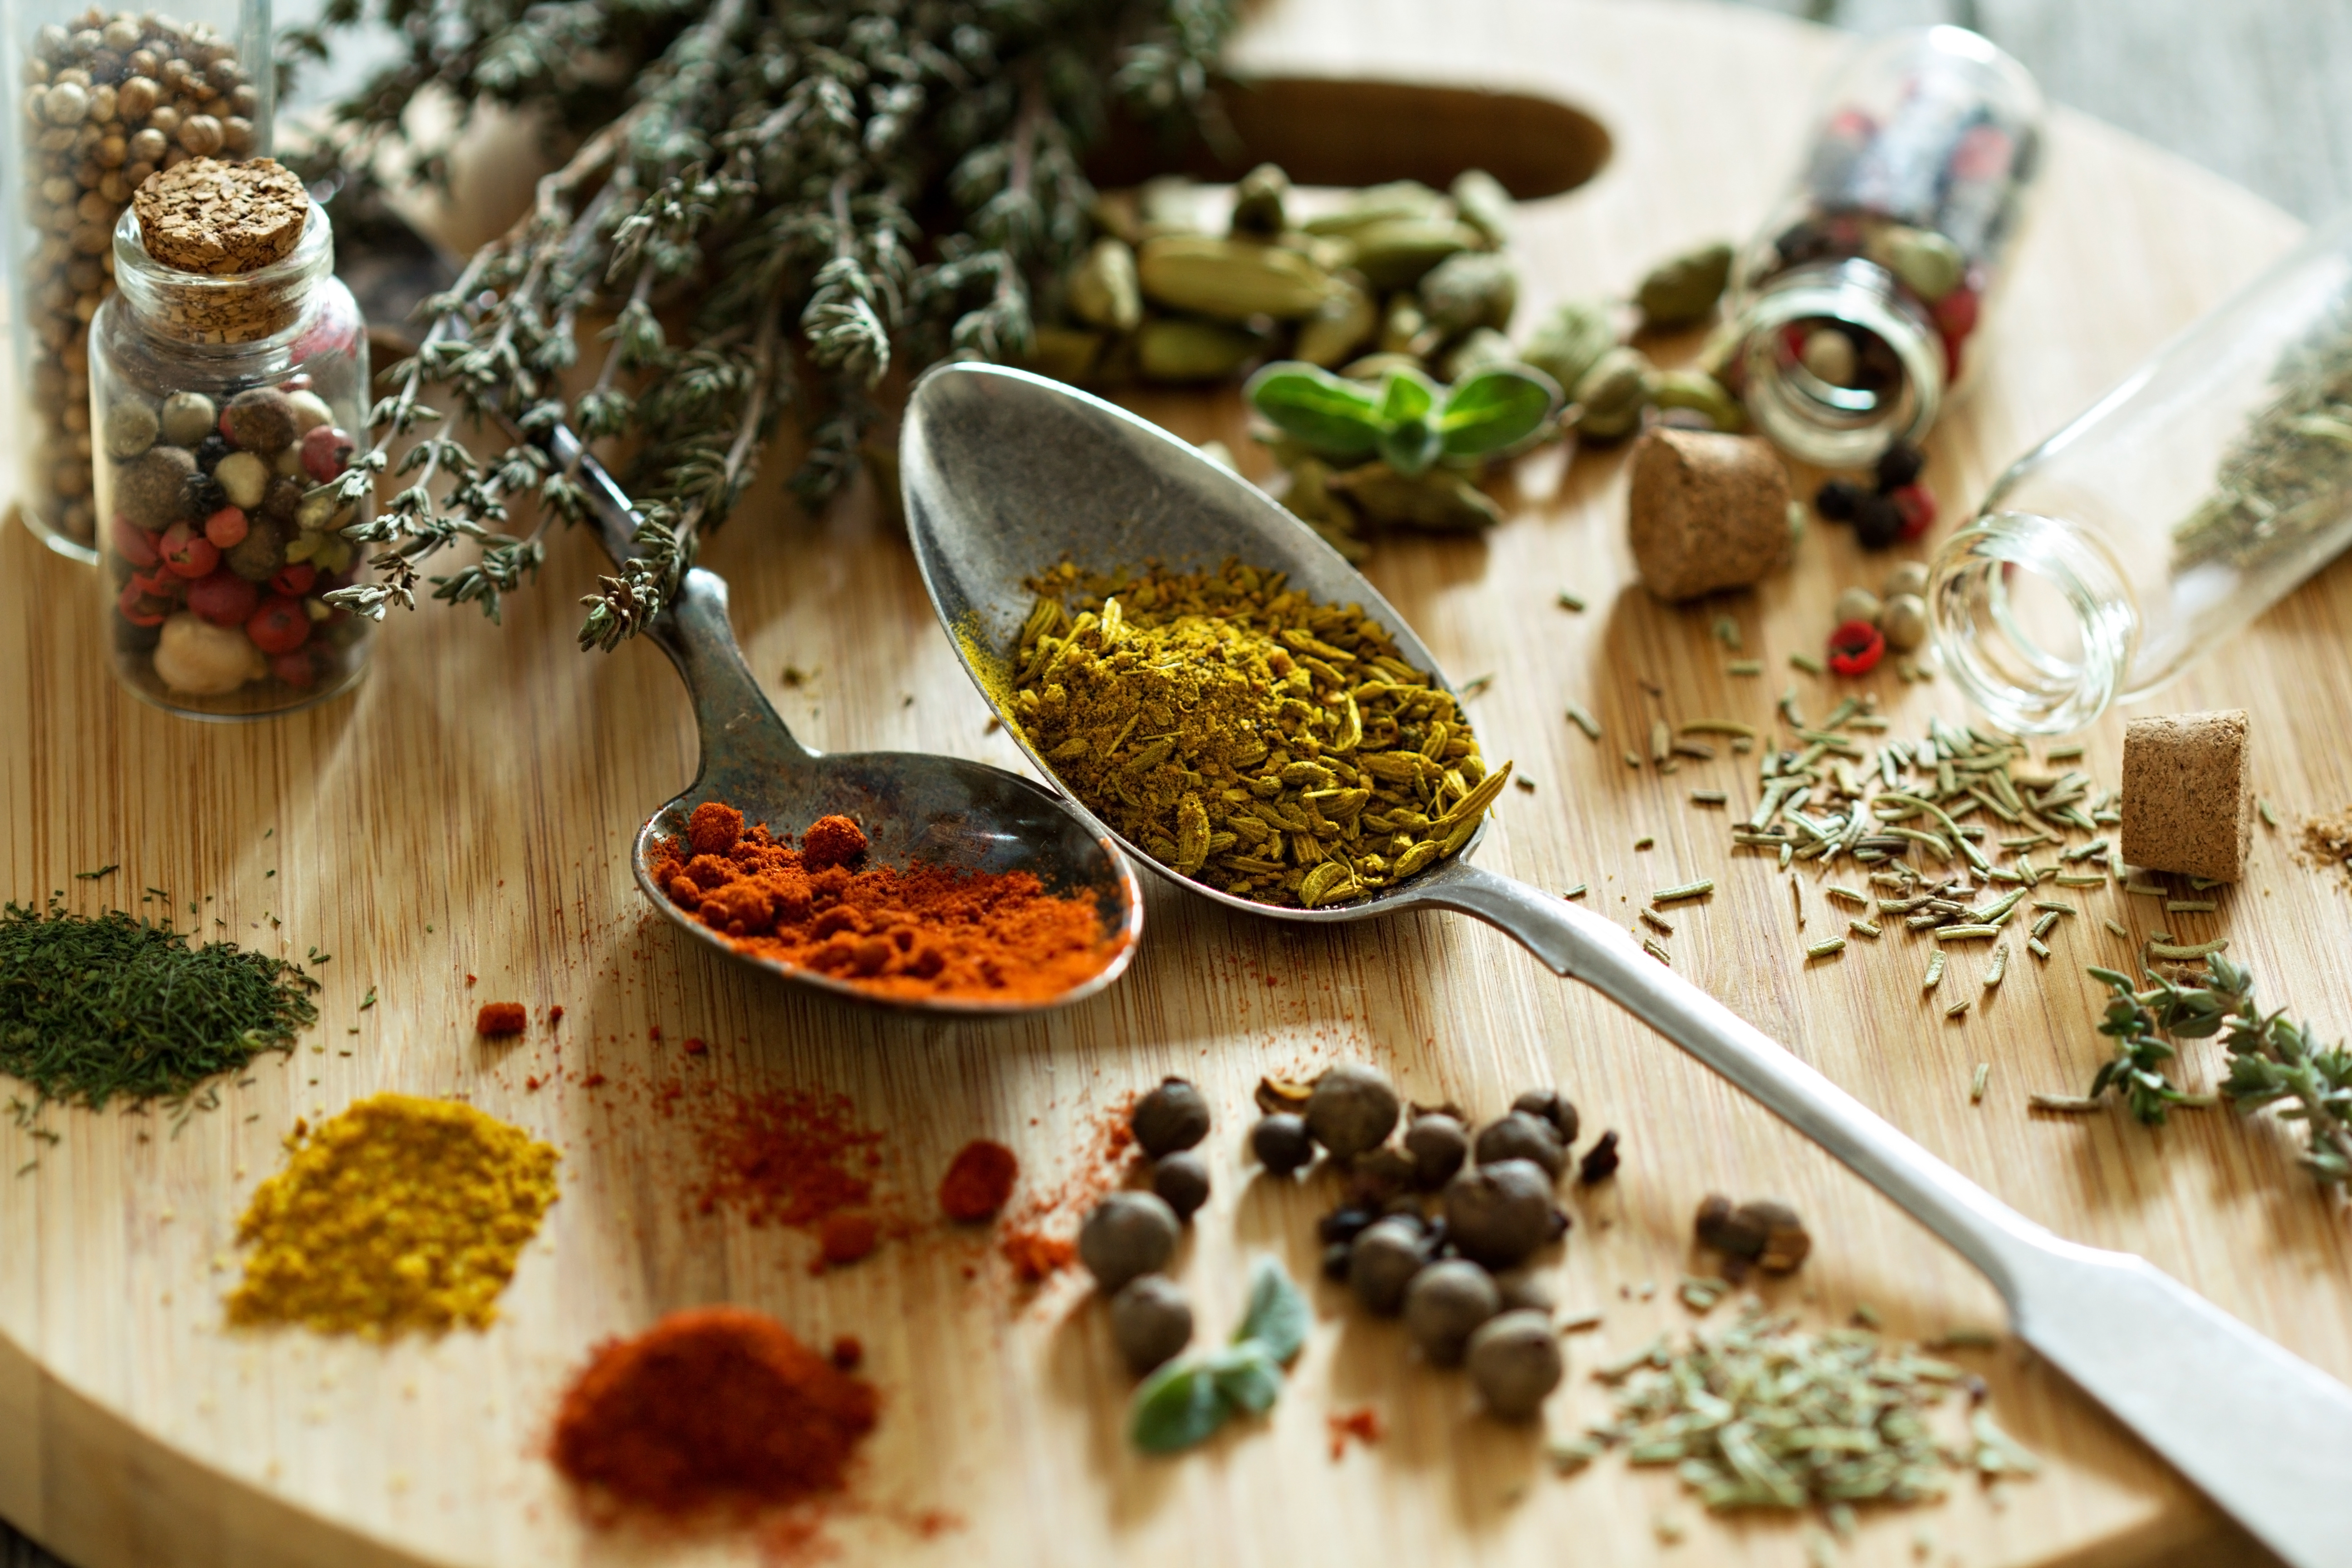 Grilling: Meat Rubs (with spices and herbs)